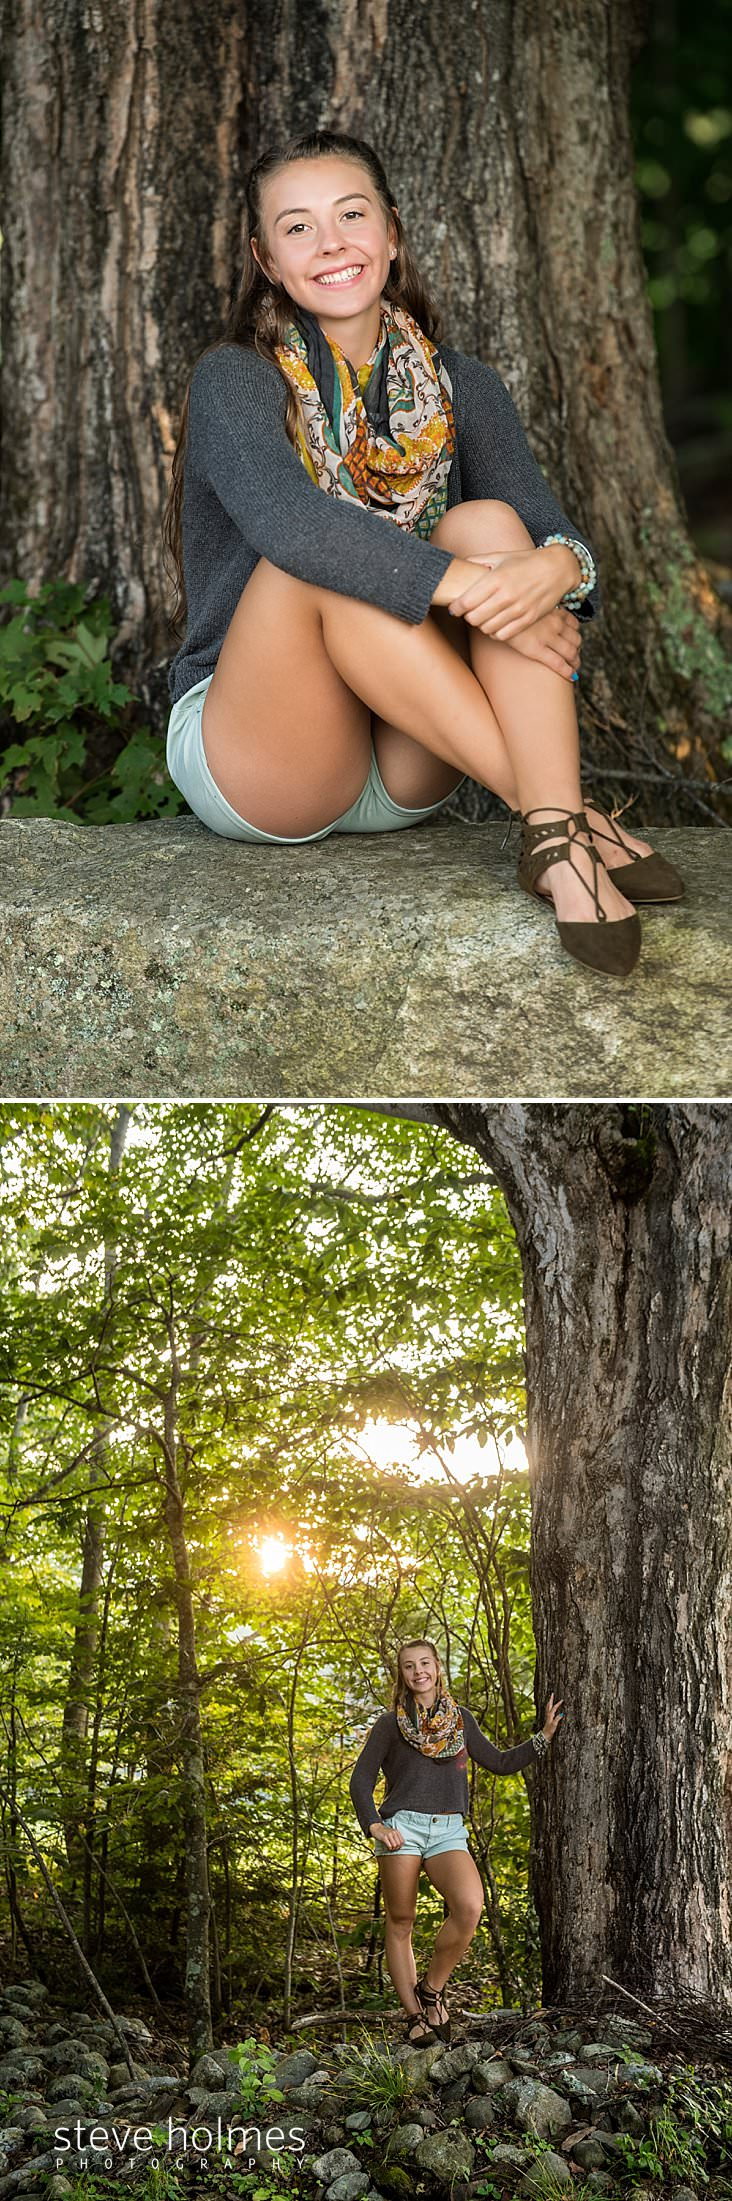 15_Teenaged girl sits on stone in front of a tree for senior portrait.jpg